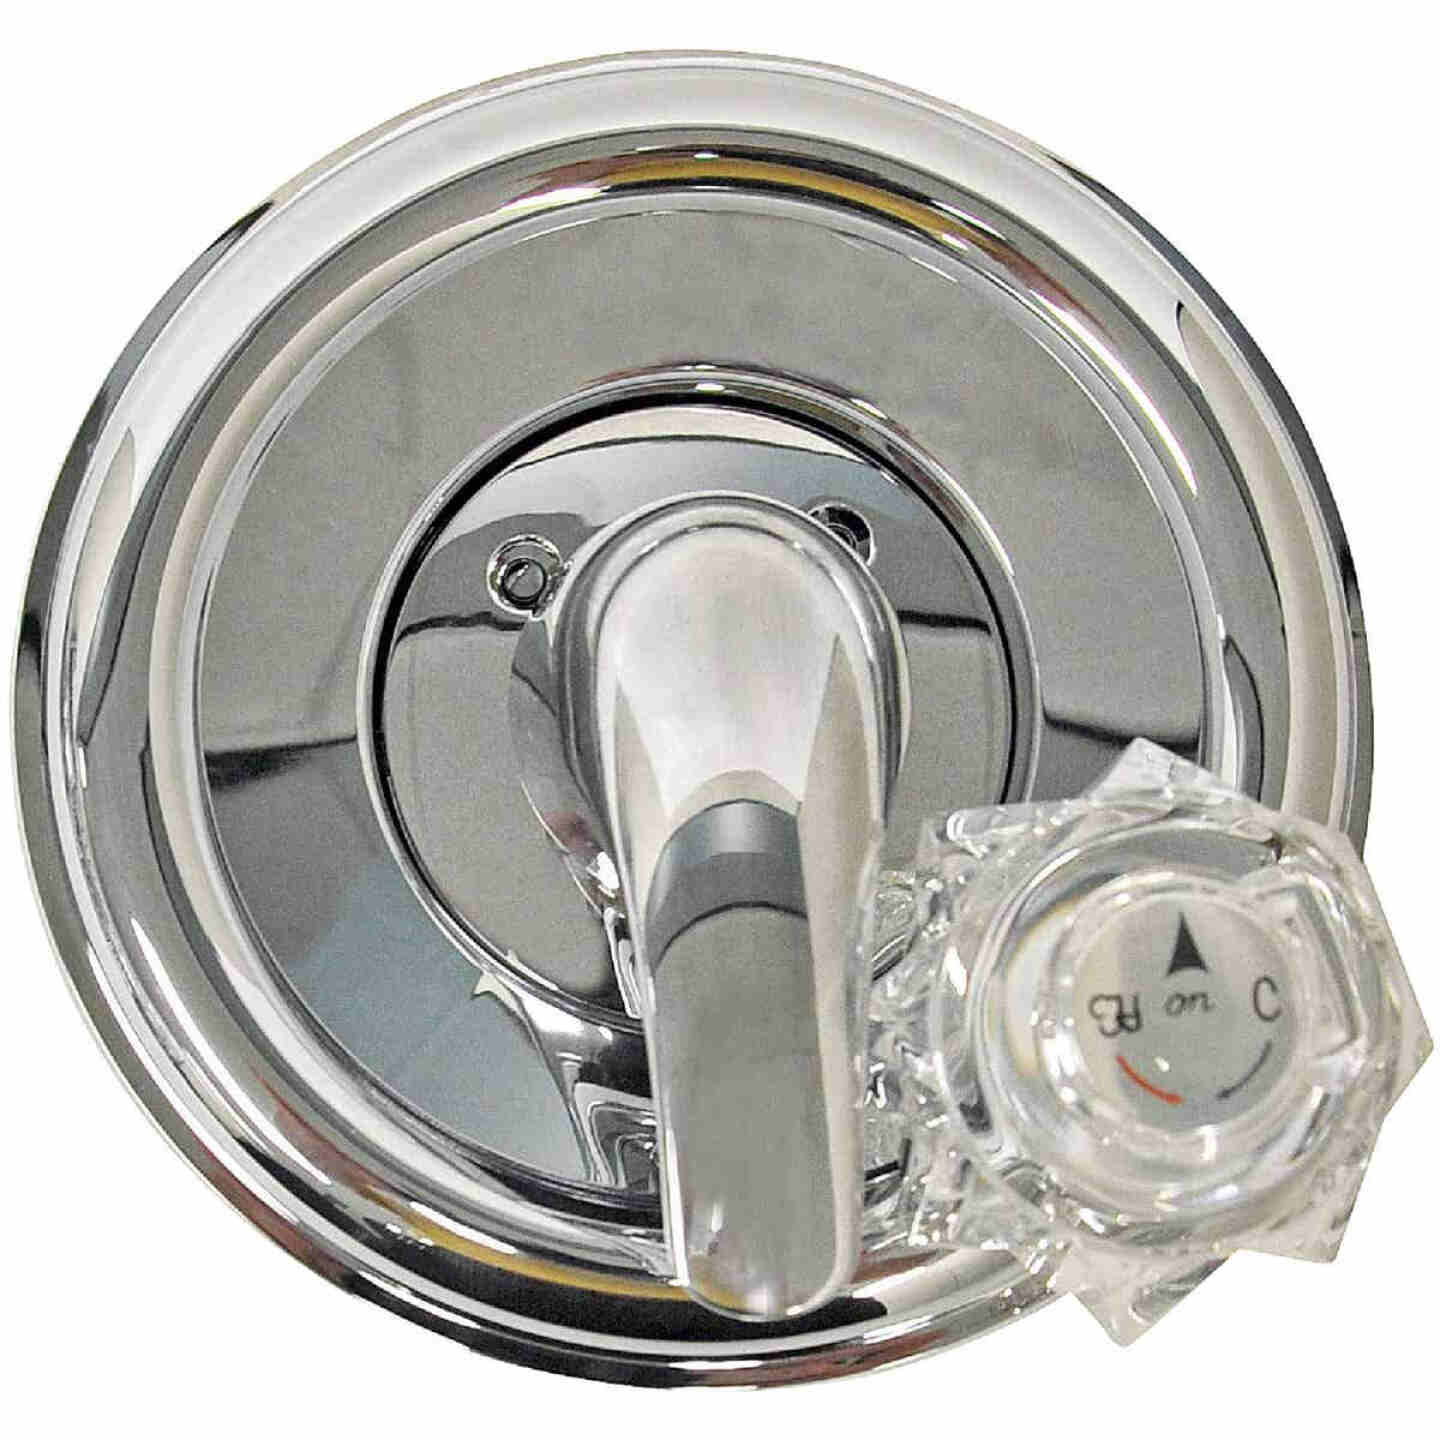 Danco Universal Delta Tub and Shower Trim Kit, Chrome Image 1